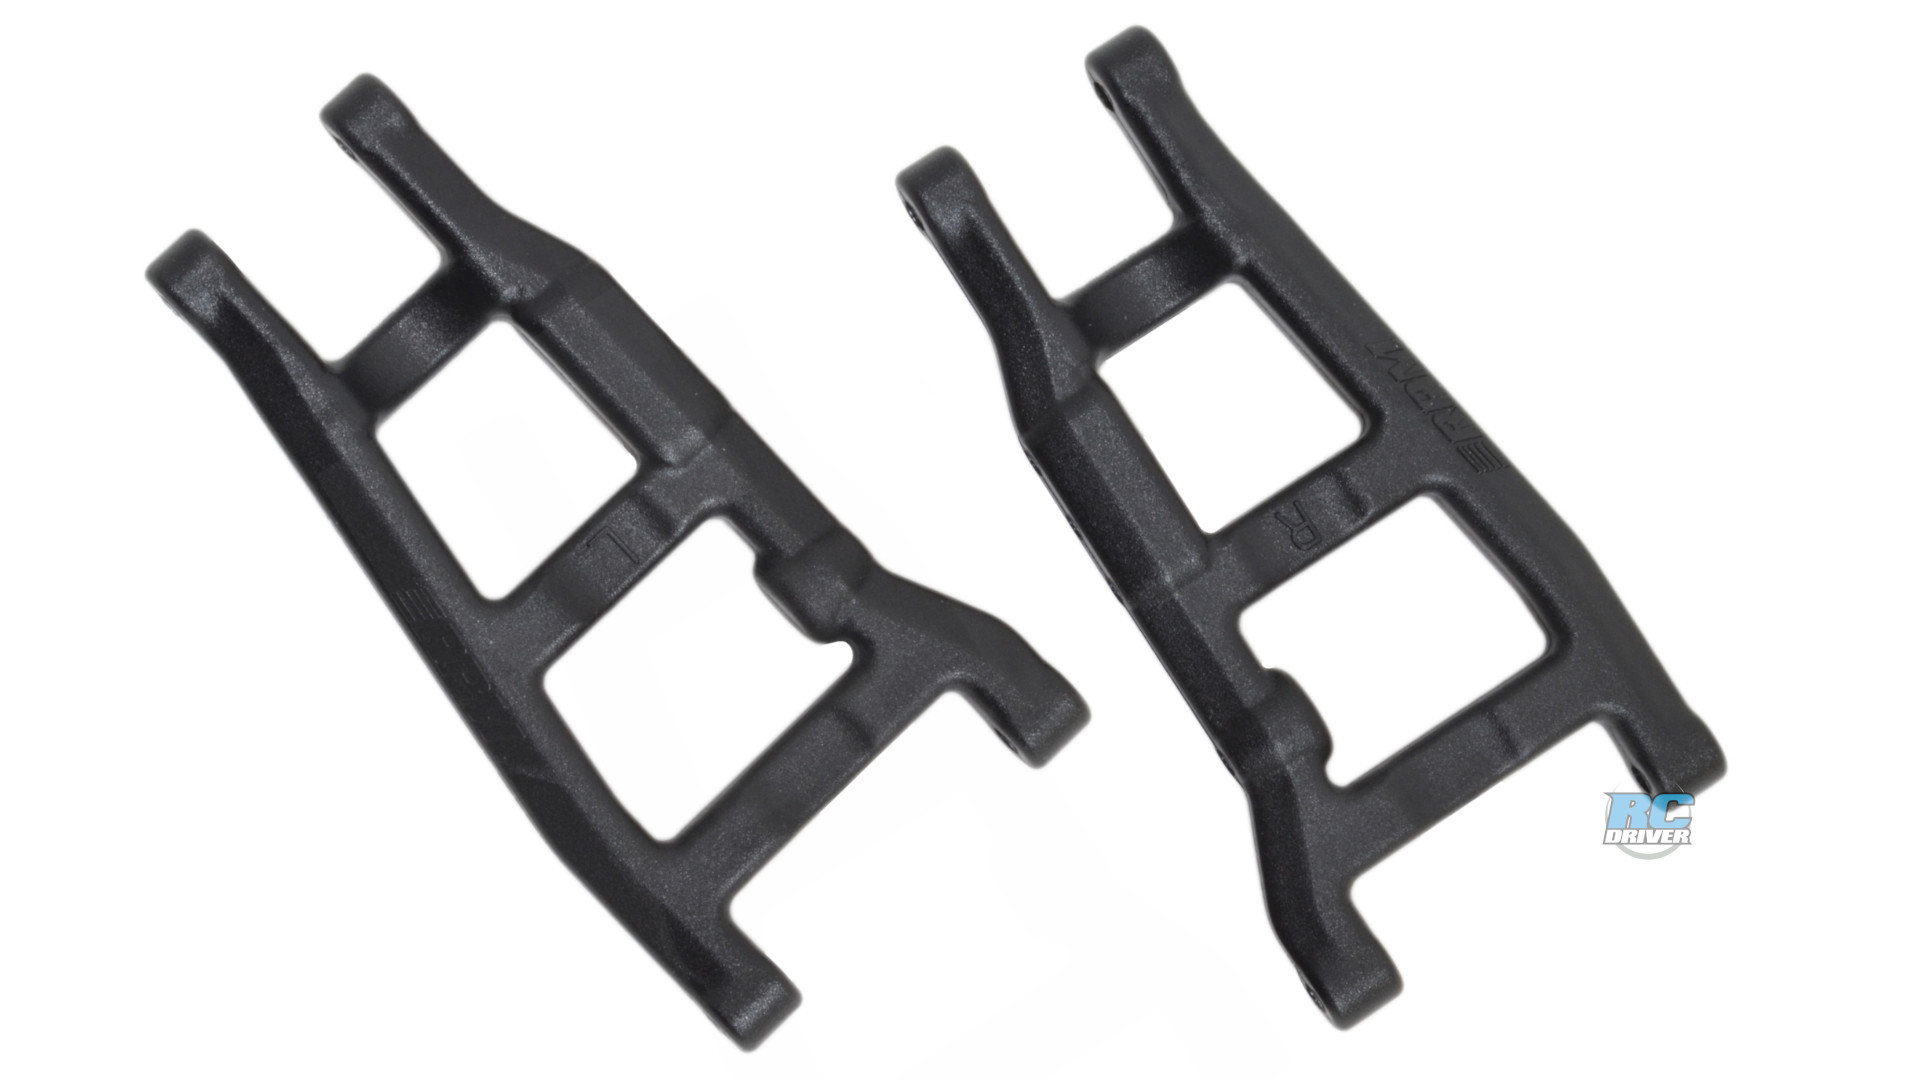 RPM A-arms for the Traxxas Telluride & ST version of the Rally